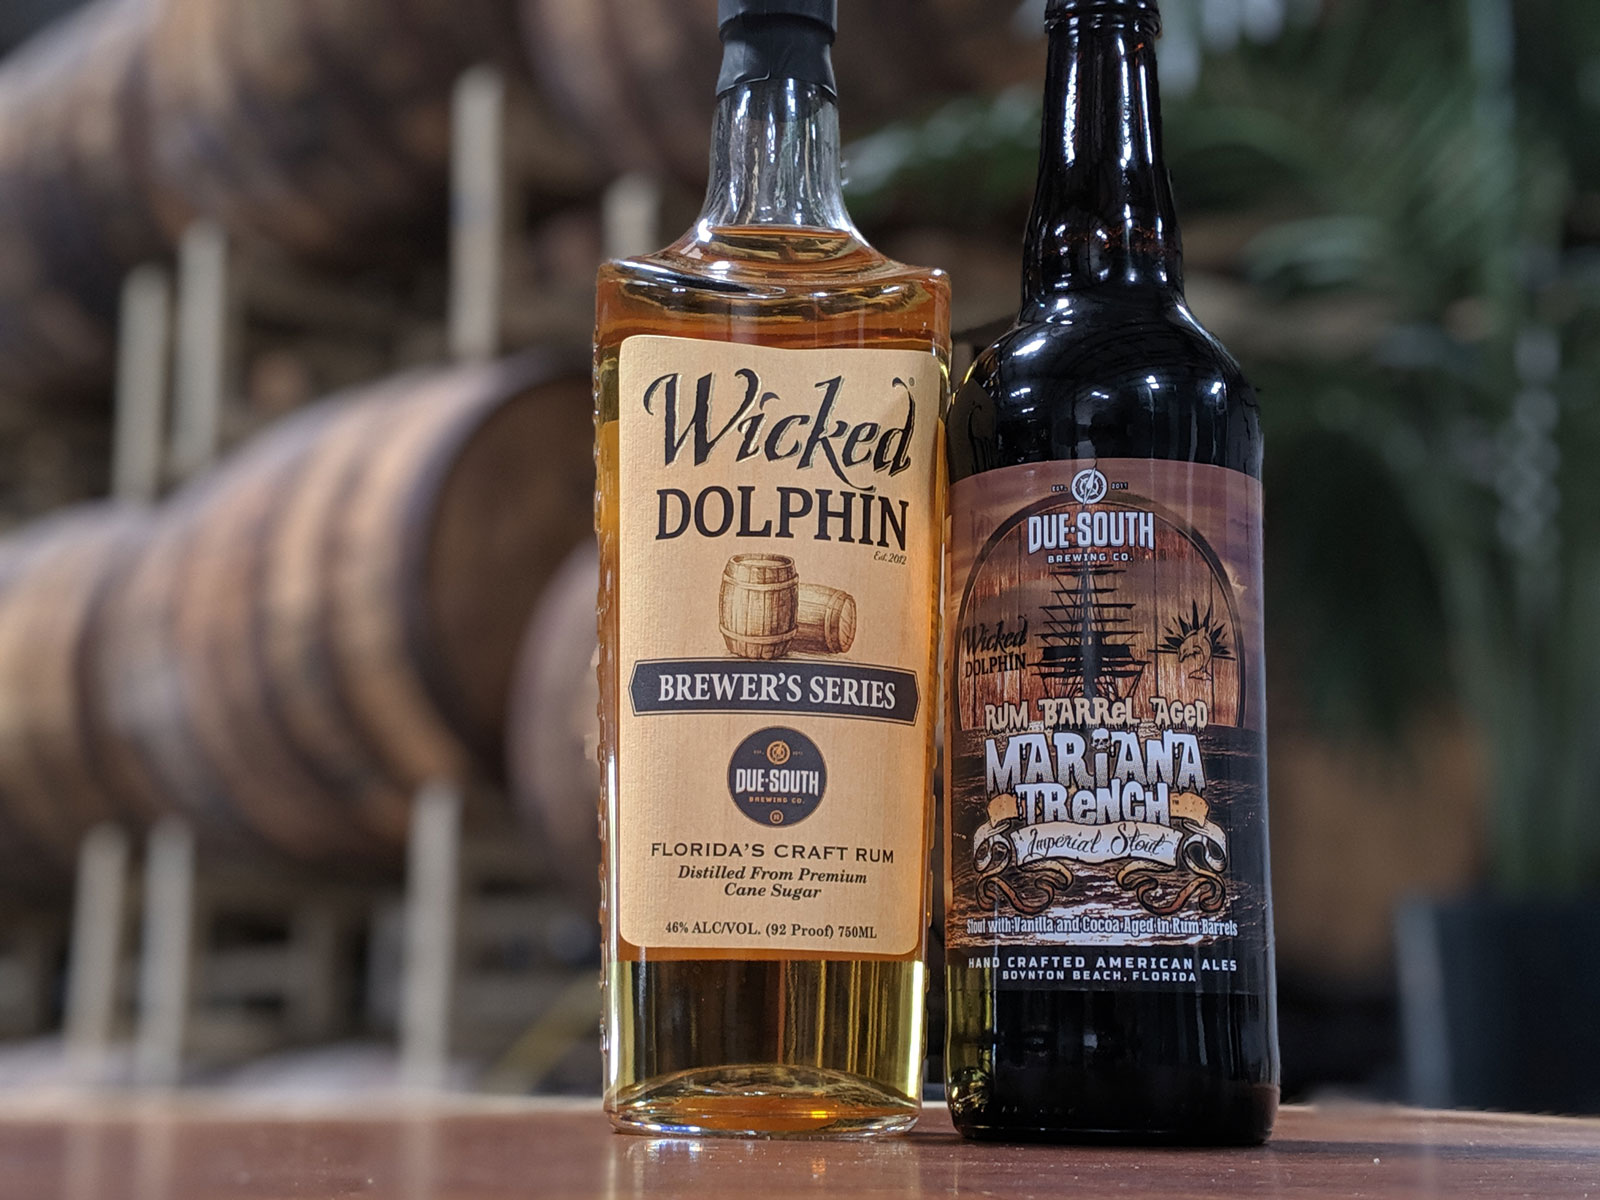 Due South Brewing and Wicked Dolphin Rum team up